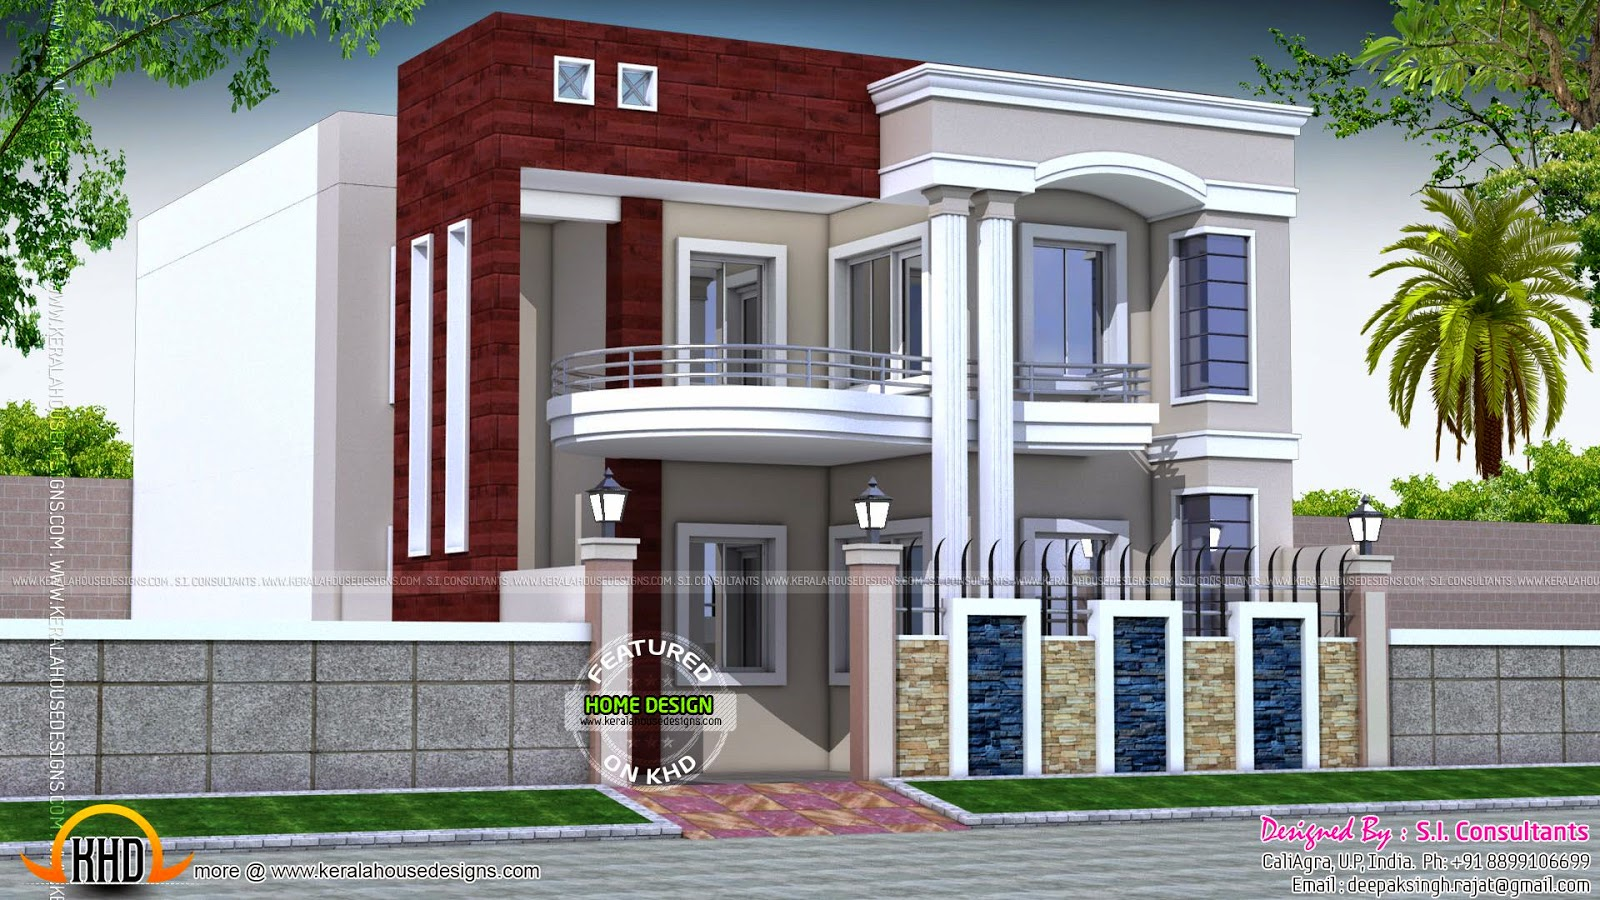 House design in north india kerala home design and floor Simple house designs indian style